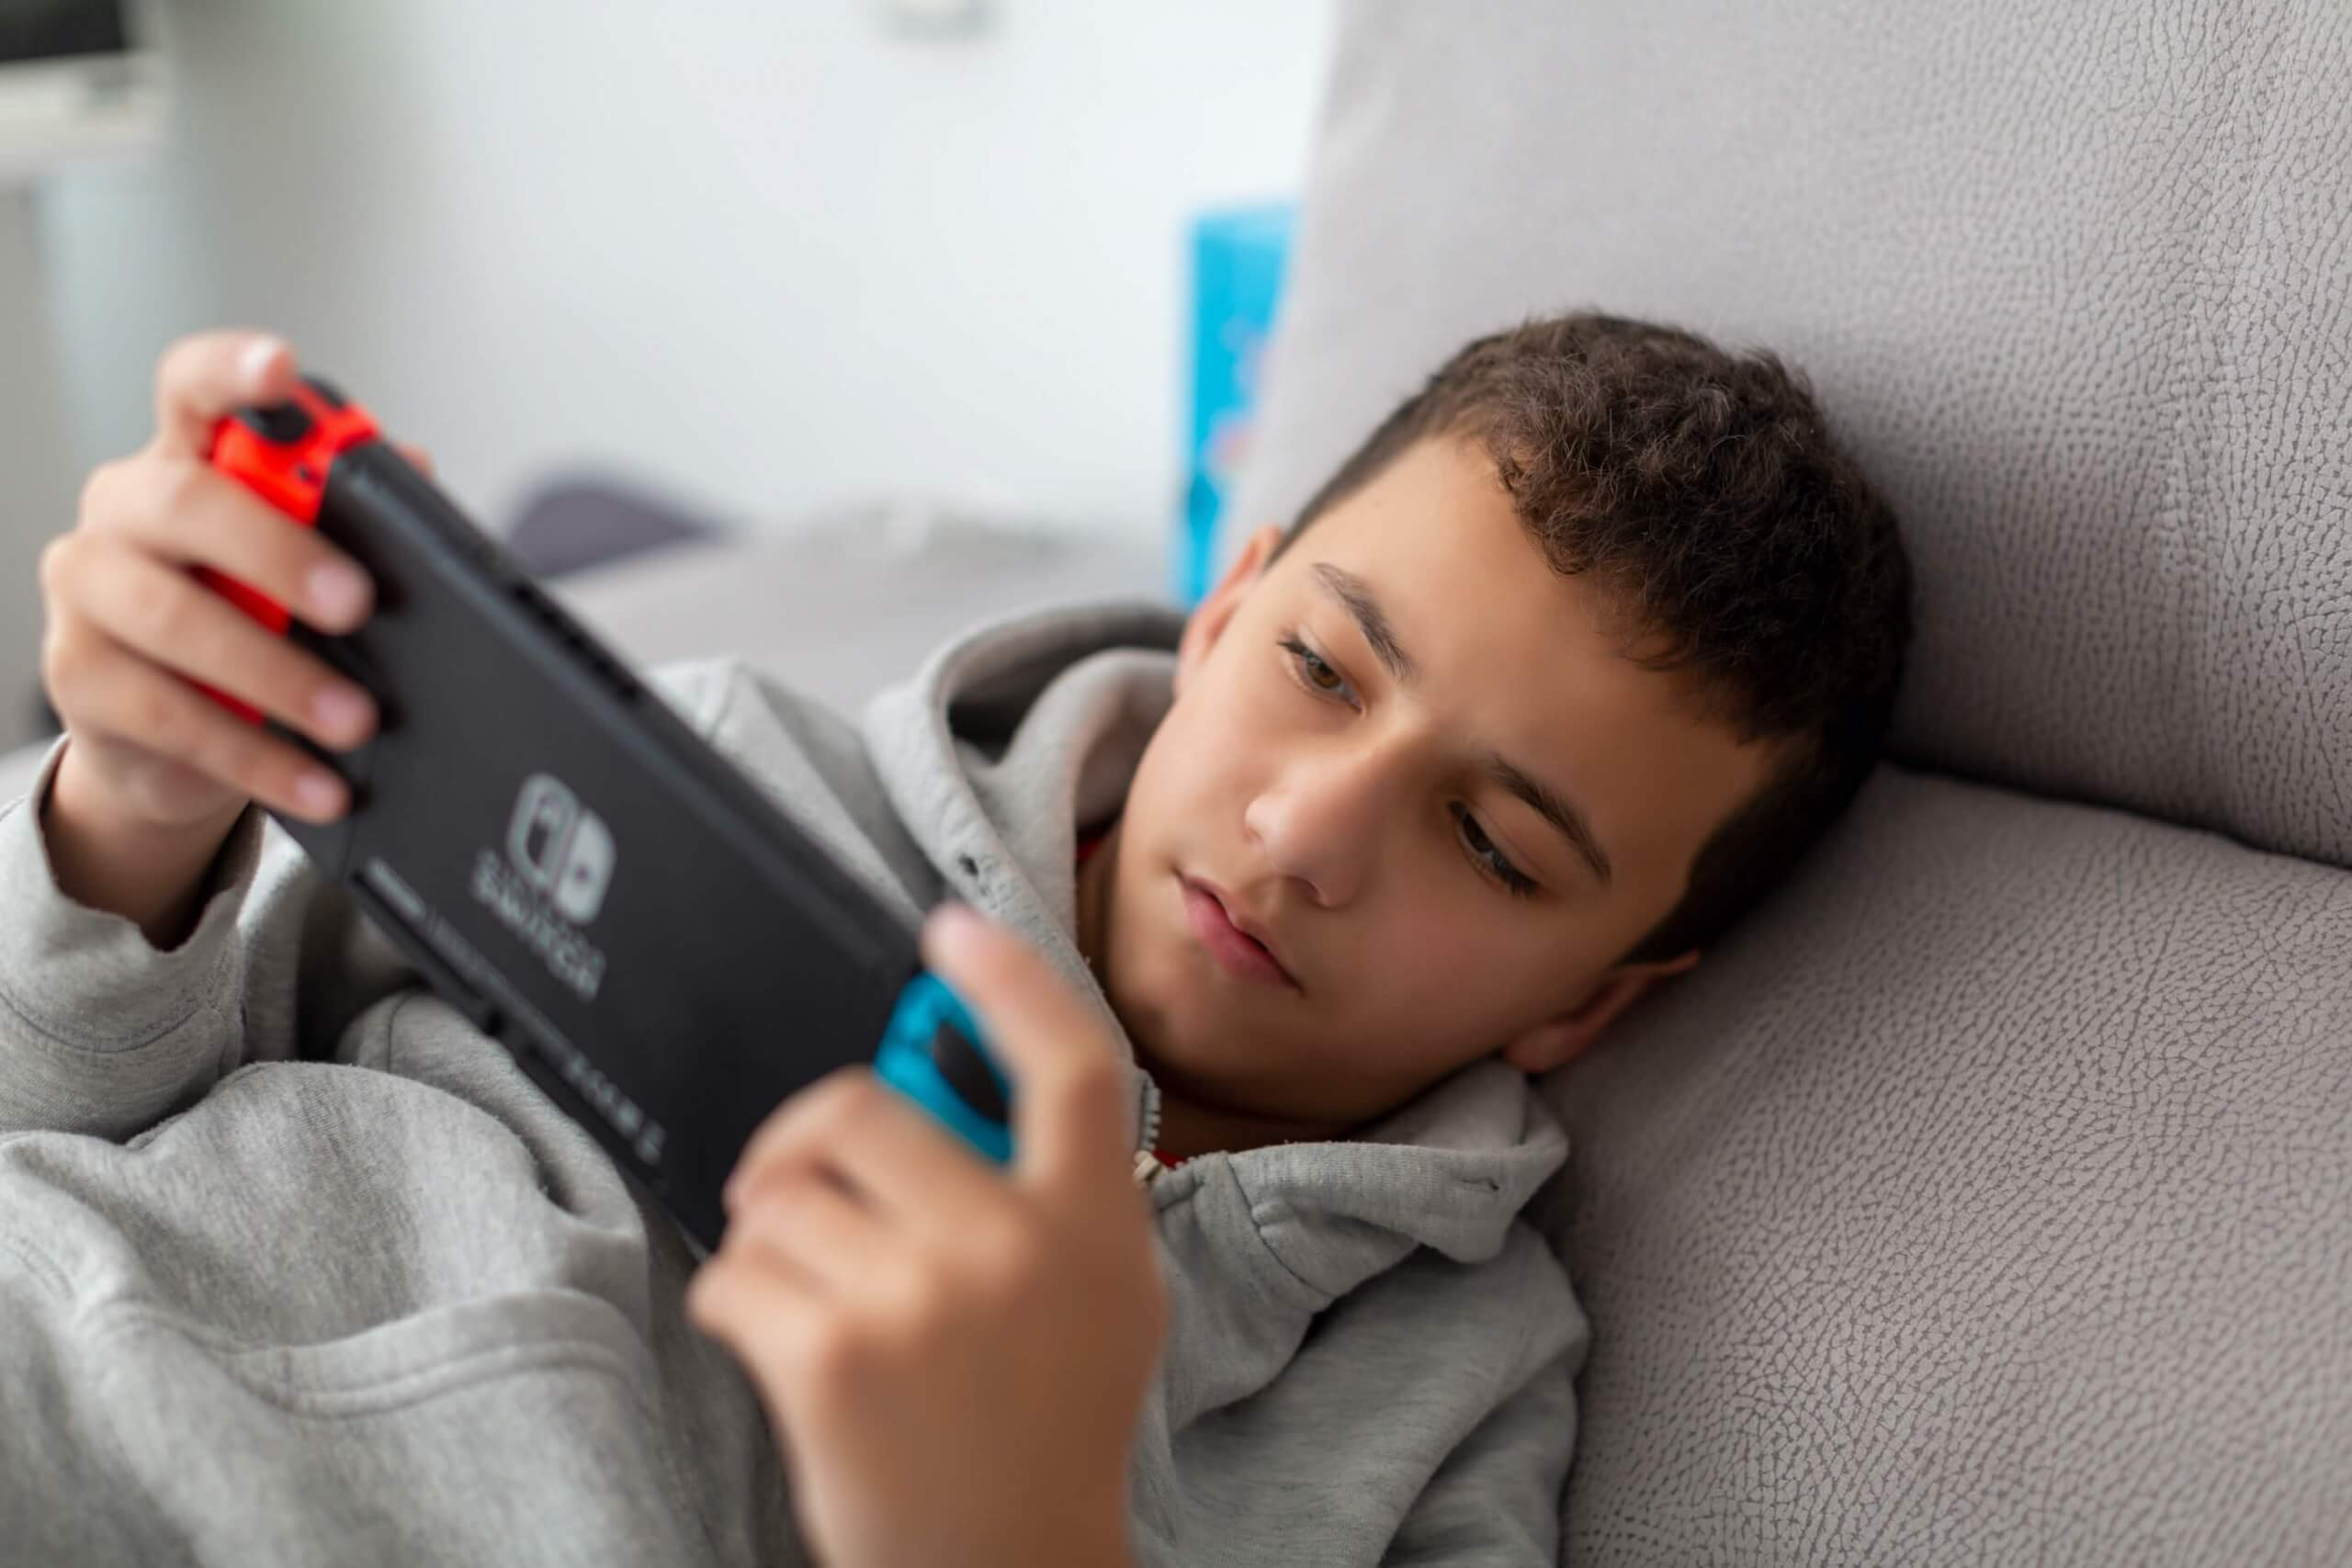 Oxford study shows video games are good for well-being